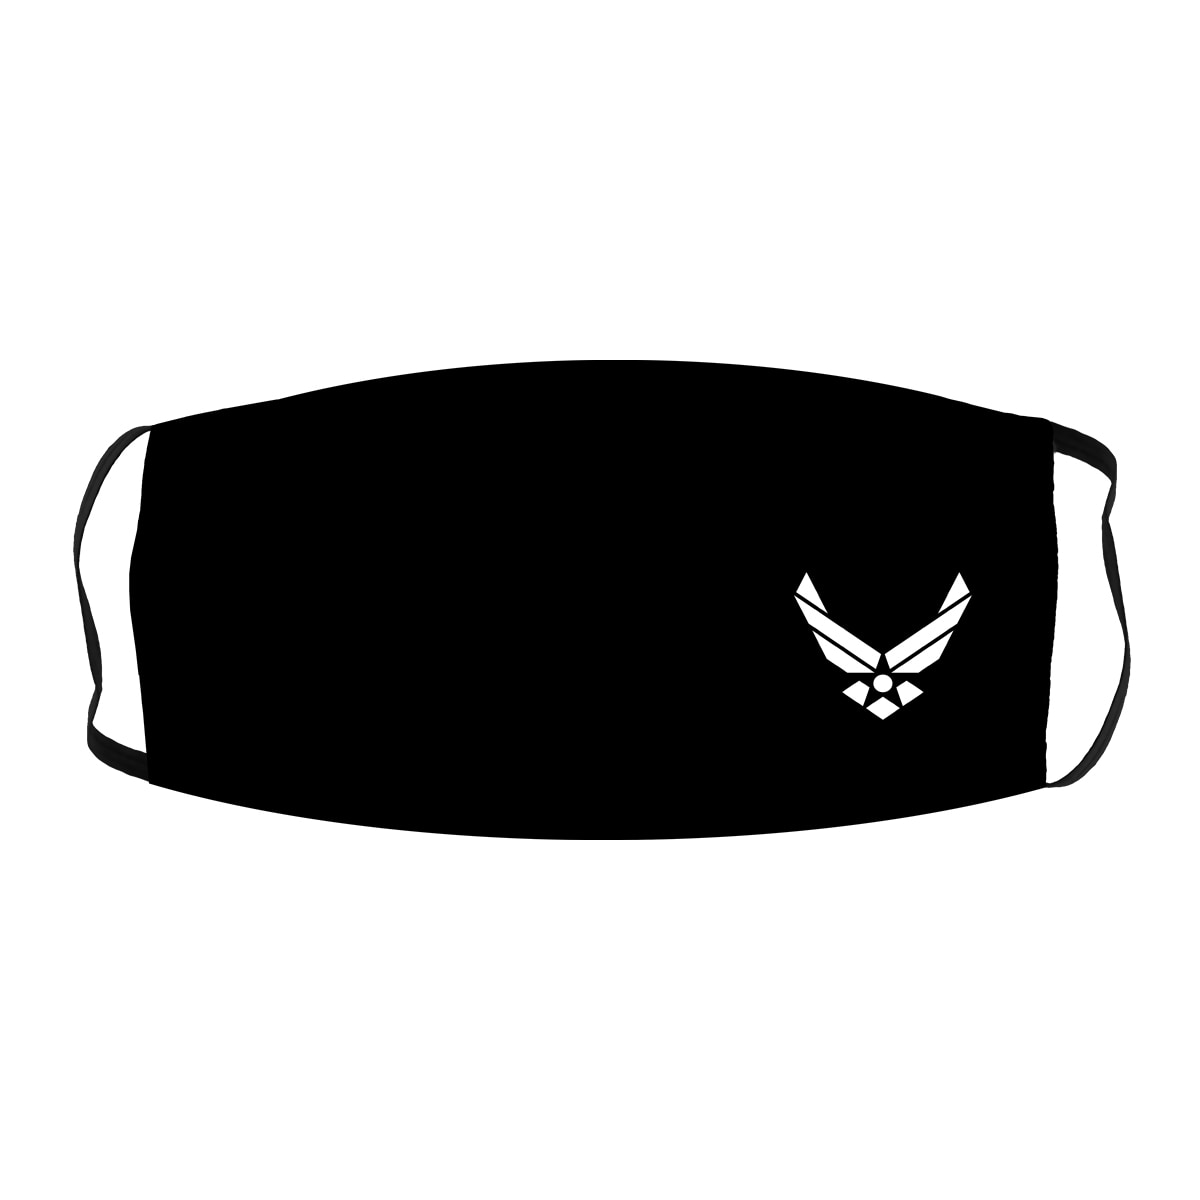 United States Air Force #2 Black Cloth Face Mask